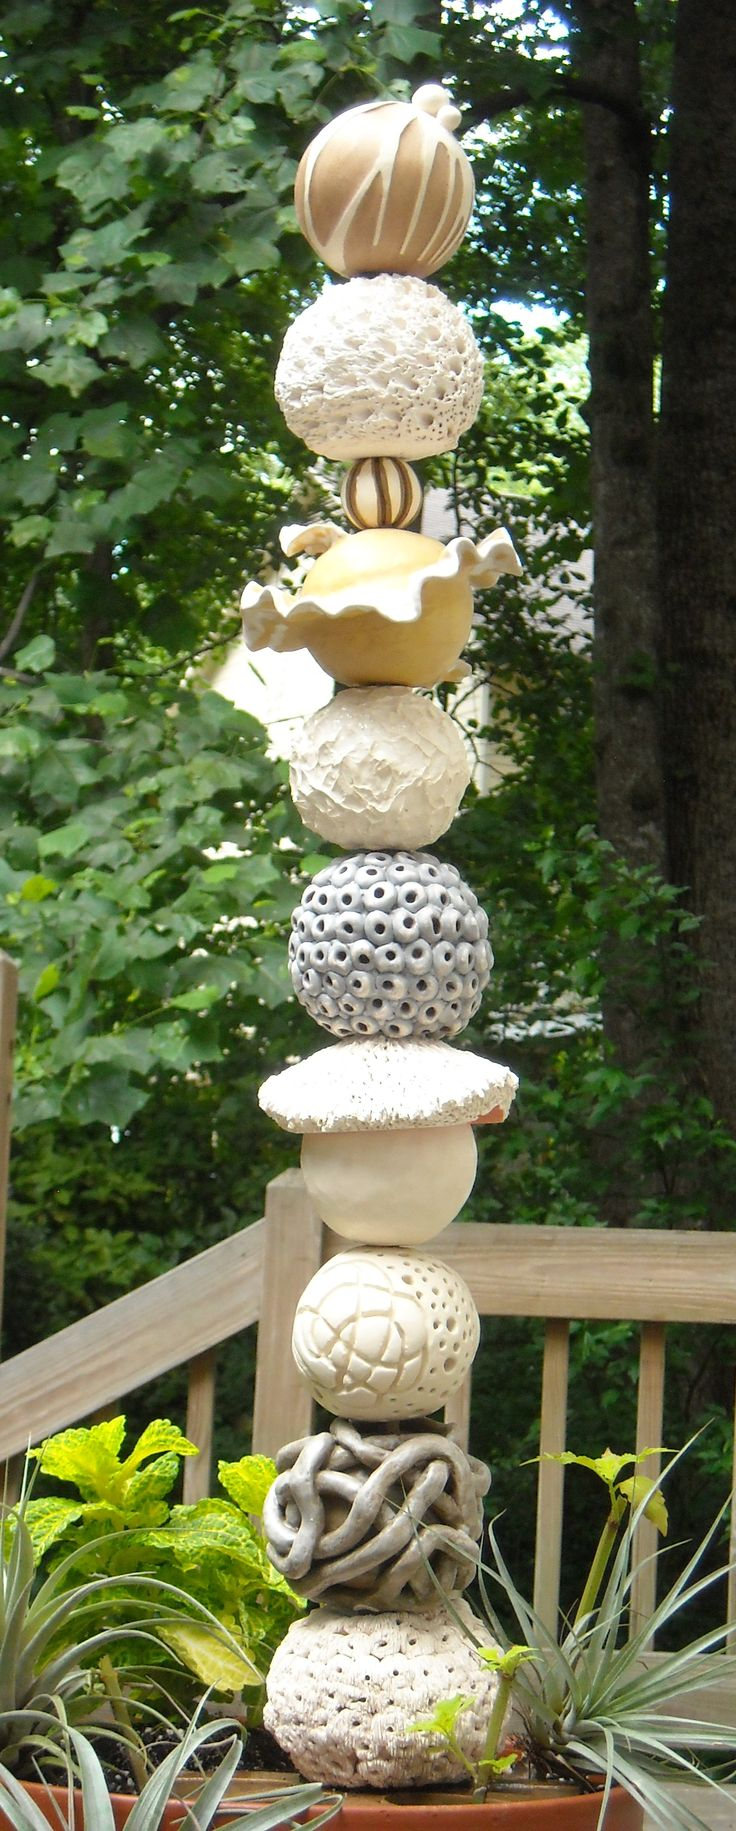 Totem These Are Fun To Make Lots Of Possibilities Ceramic Totems Pinterest Totems